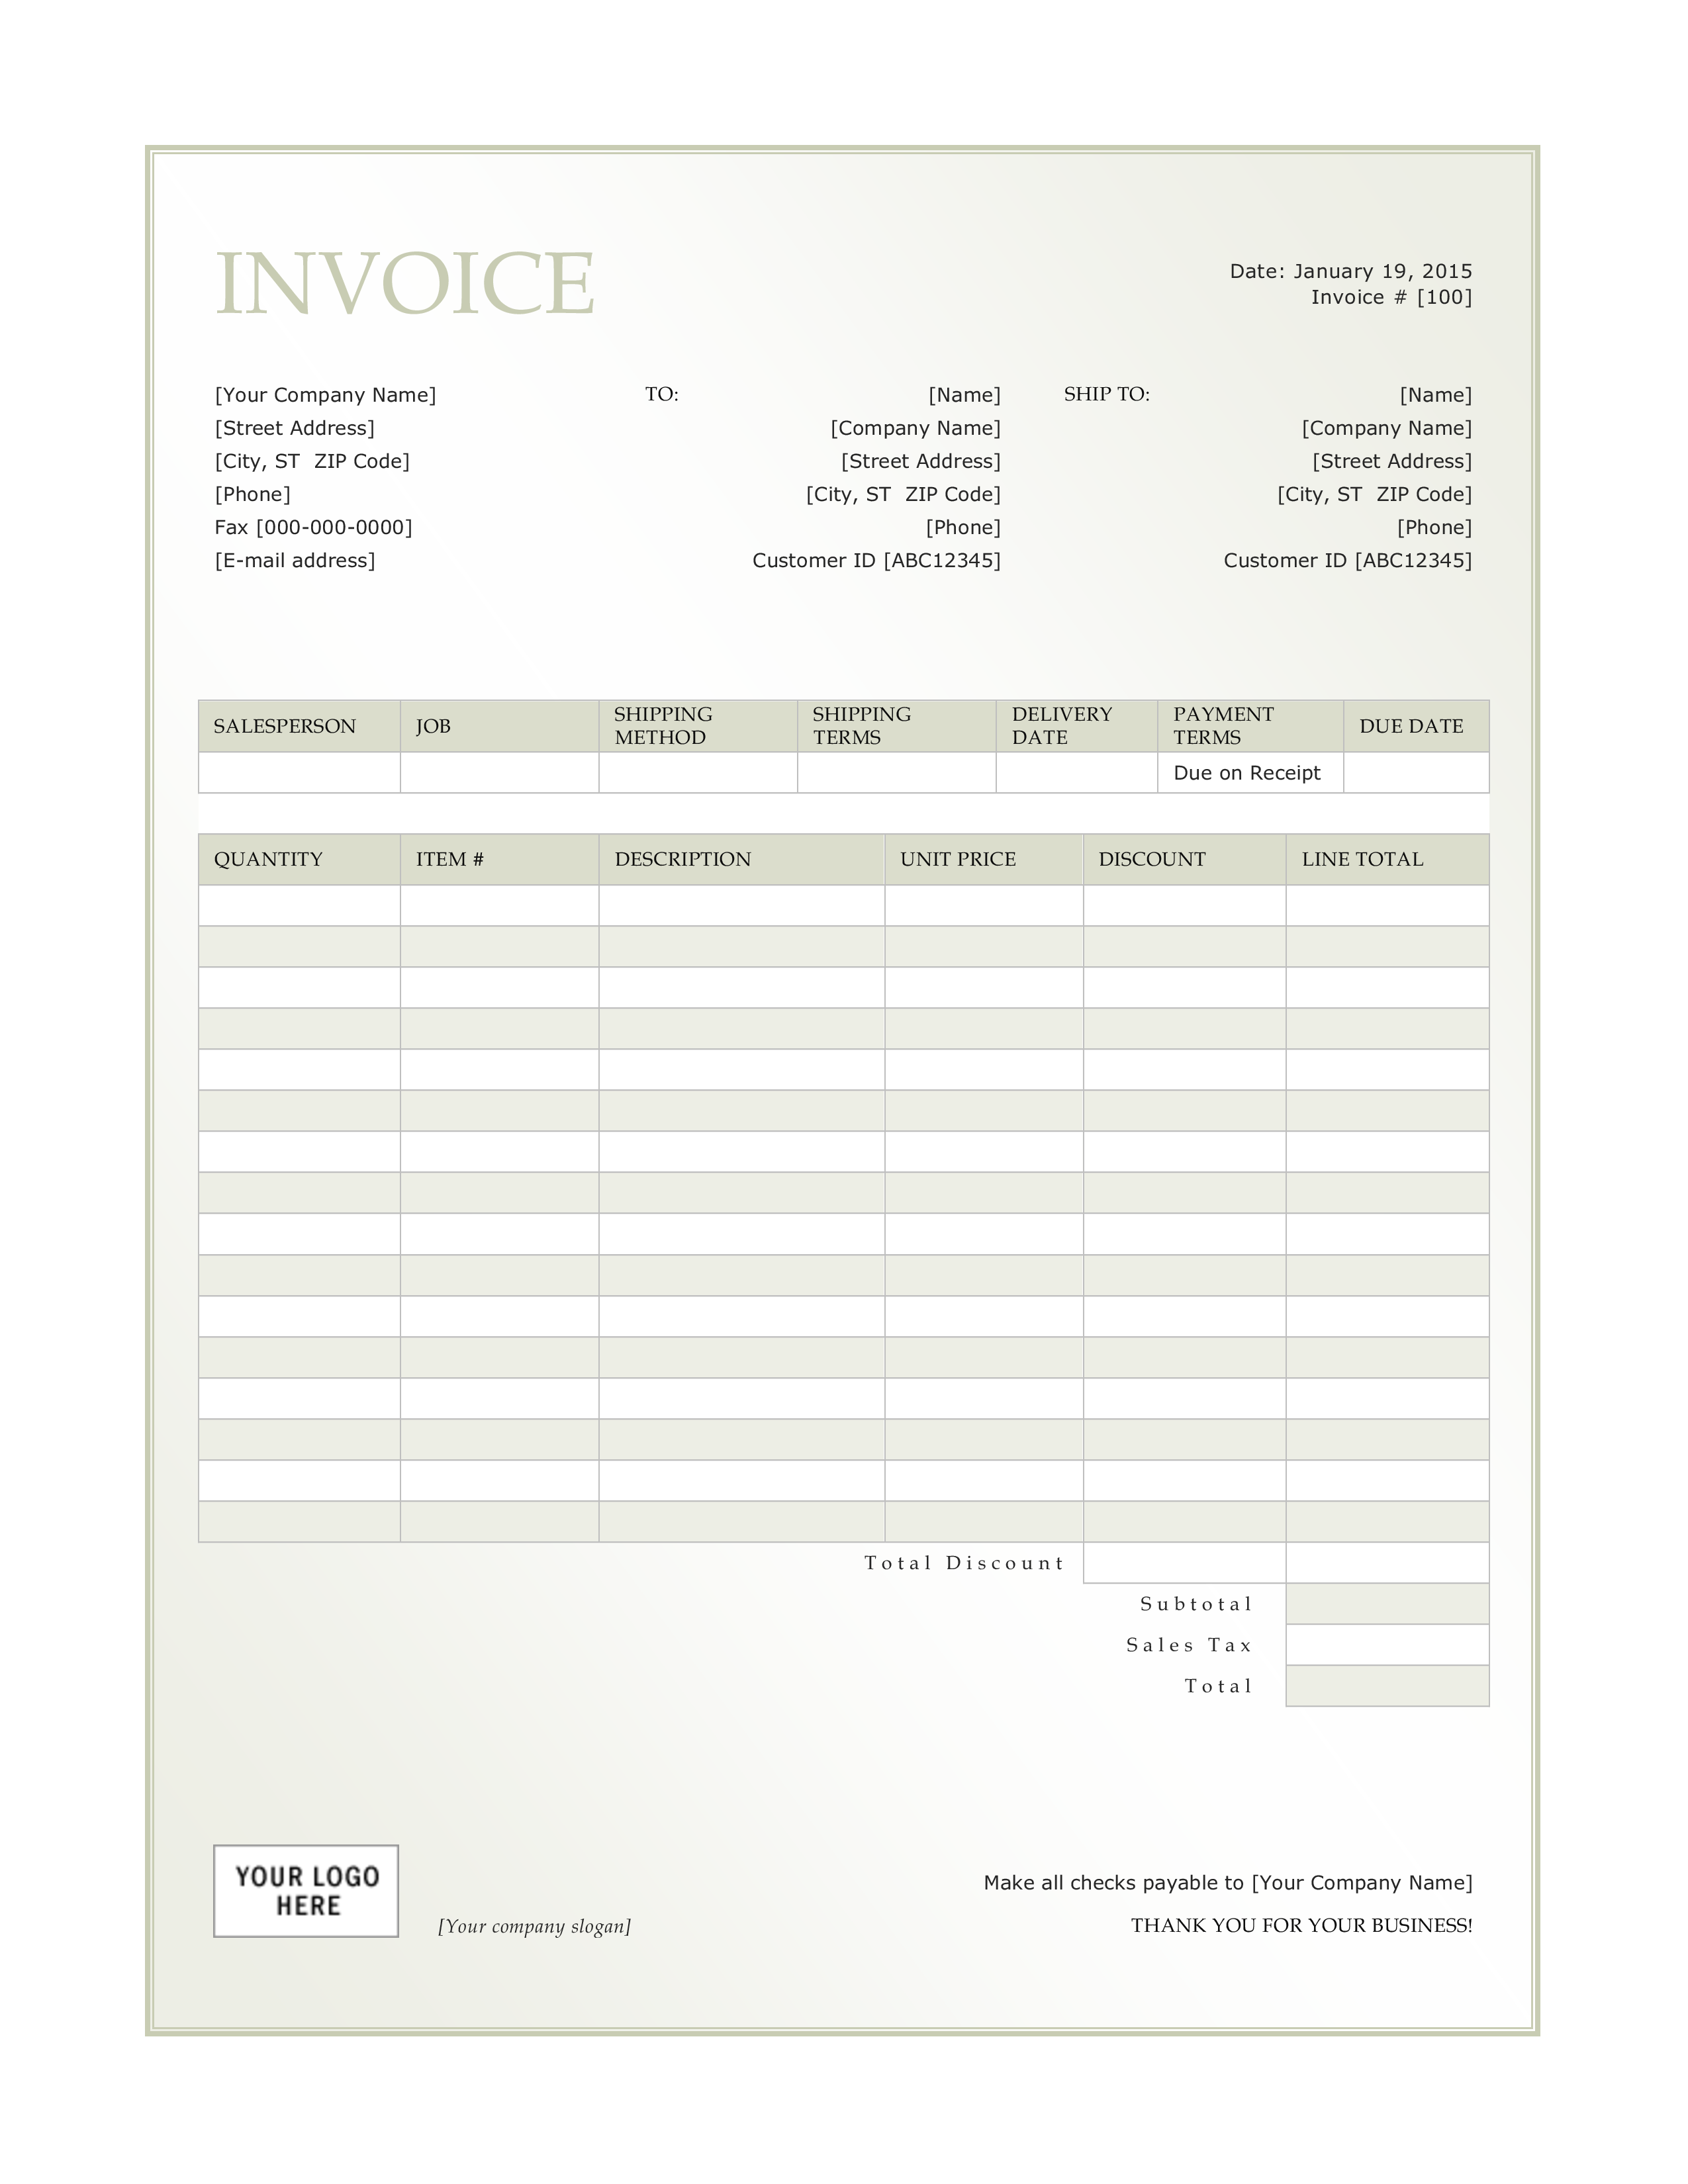 General Invoice Format How To Make An Invoice The Way You Present Yourself To Your Customers Is Impo Invoice Template Invoice Template Word Receipt Template